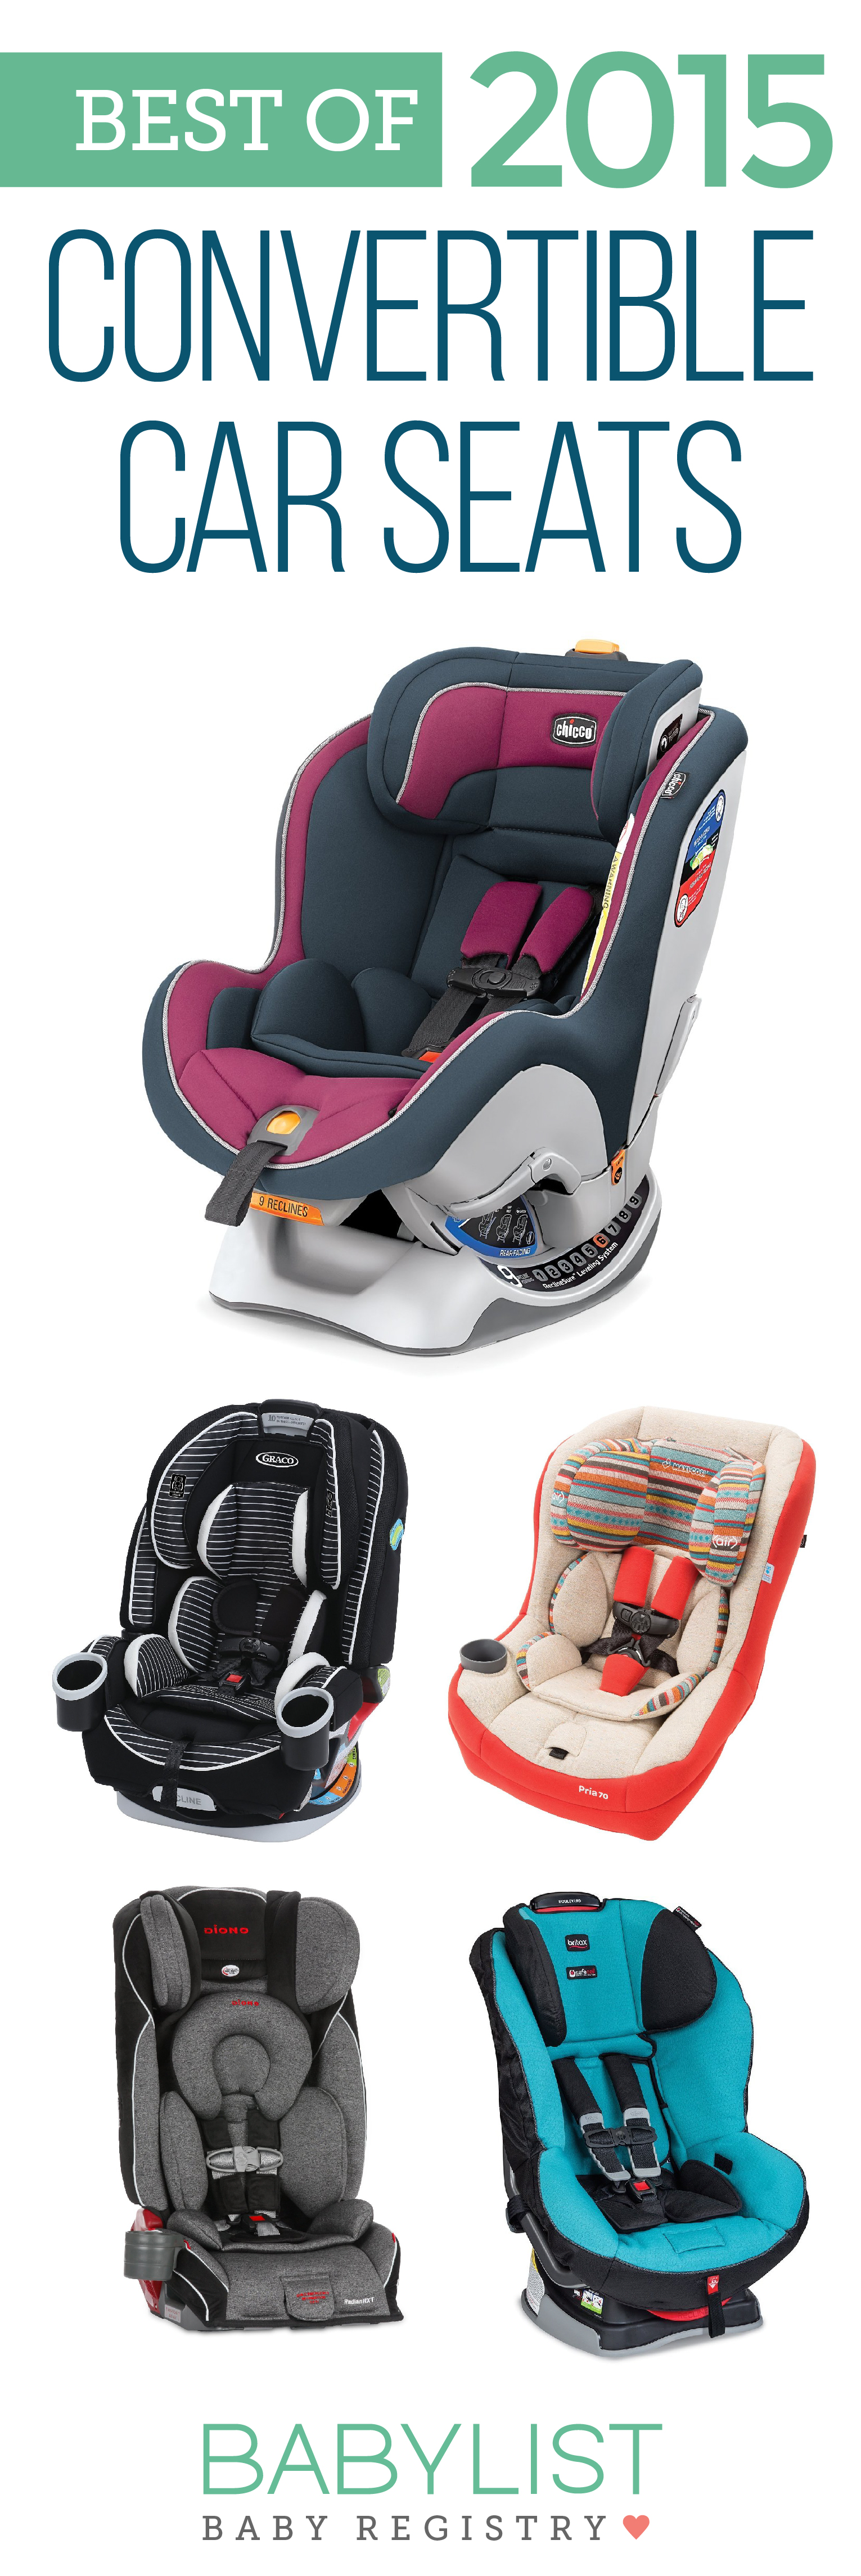 8 Best Convertible Car Seats According to Thousands of